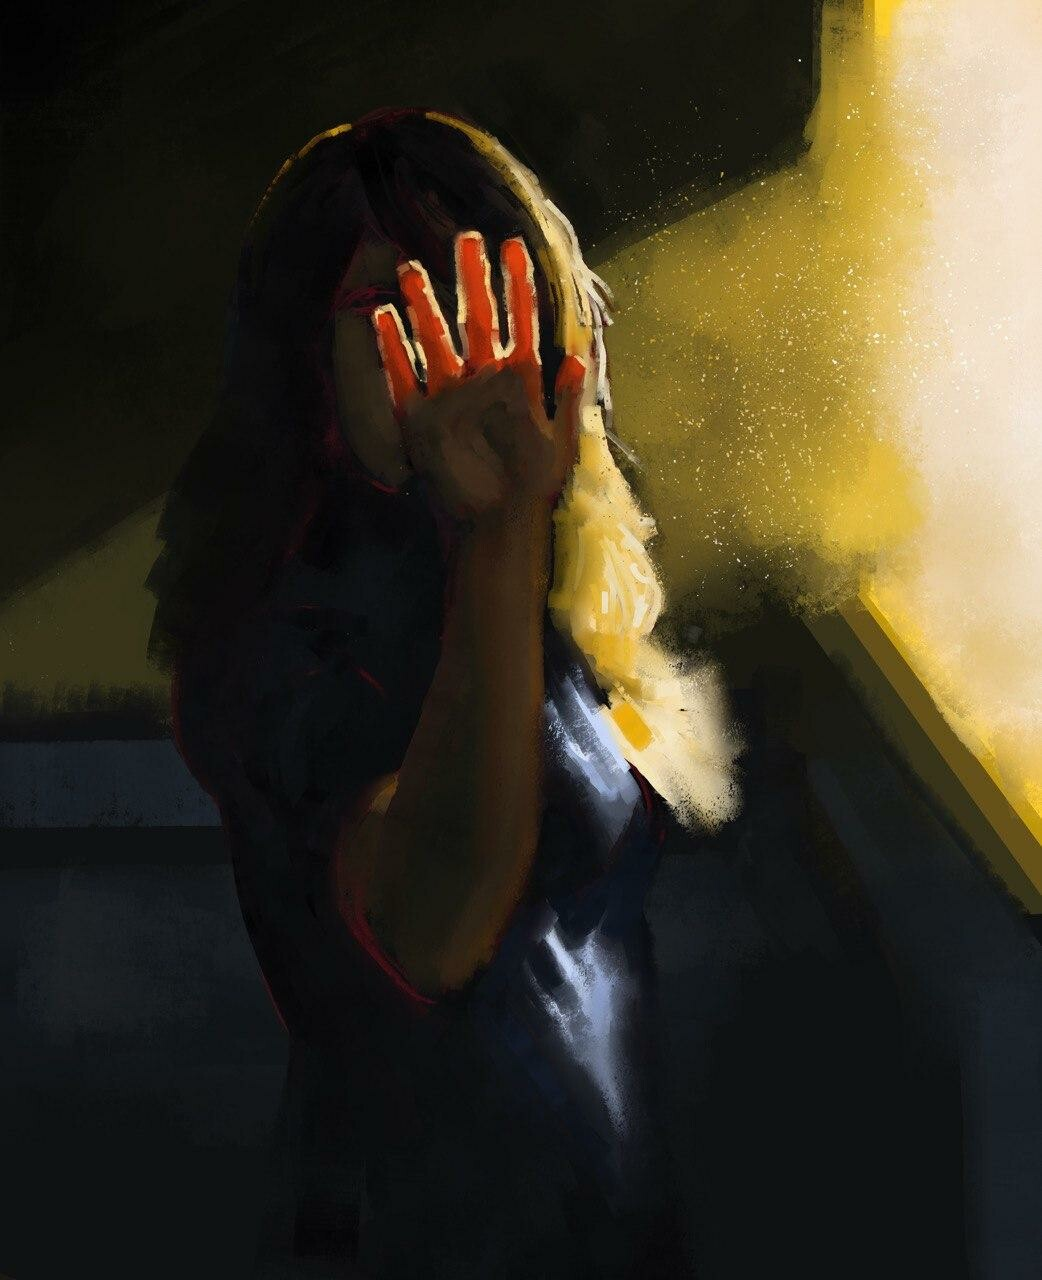 Light study - no color picking as usual.